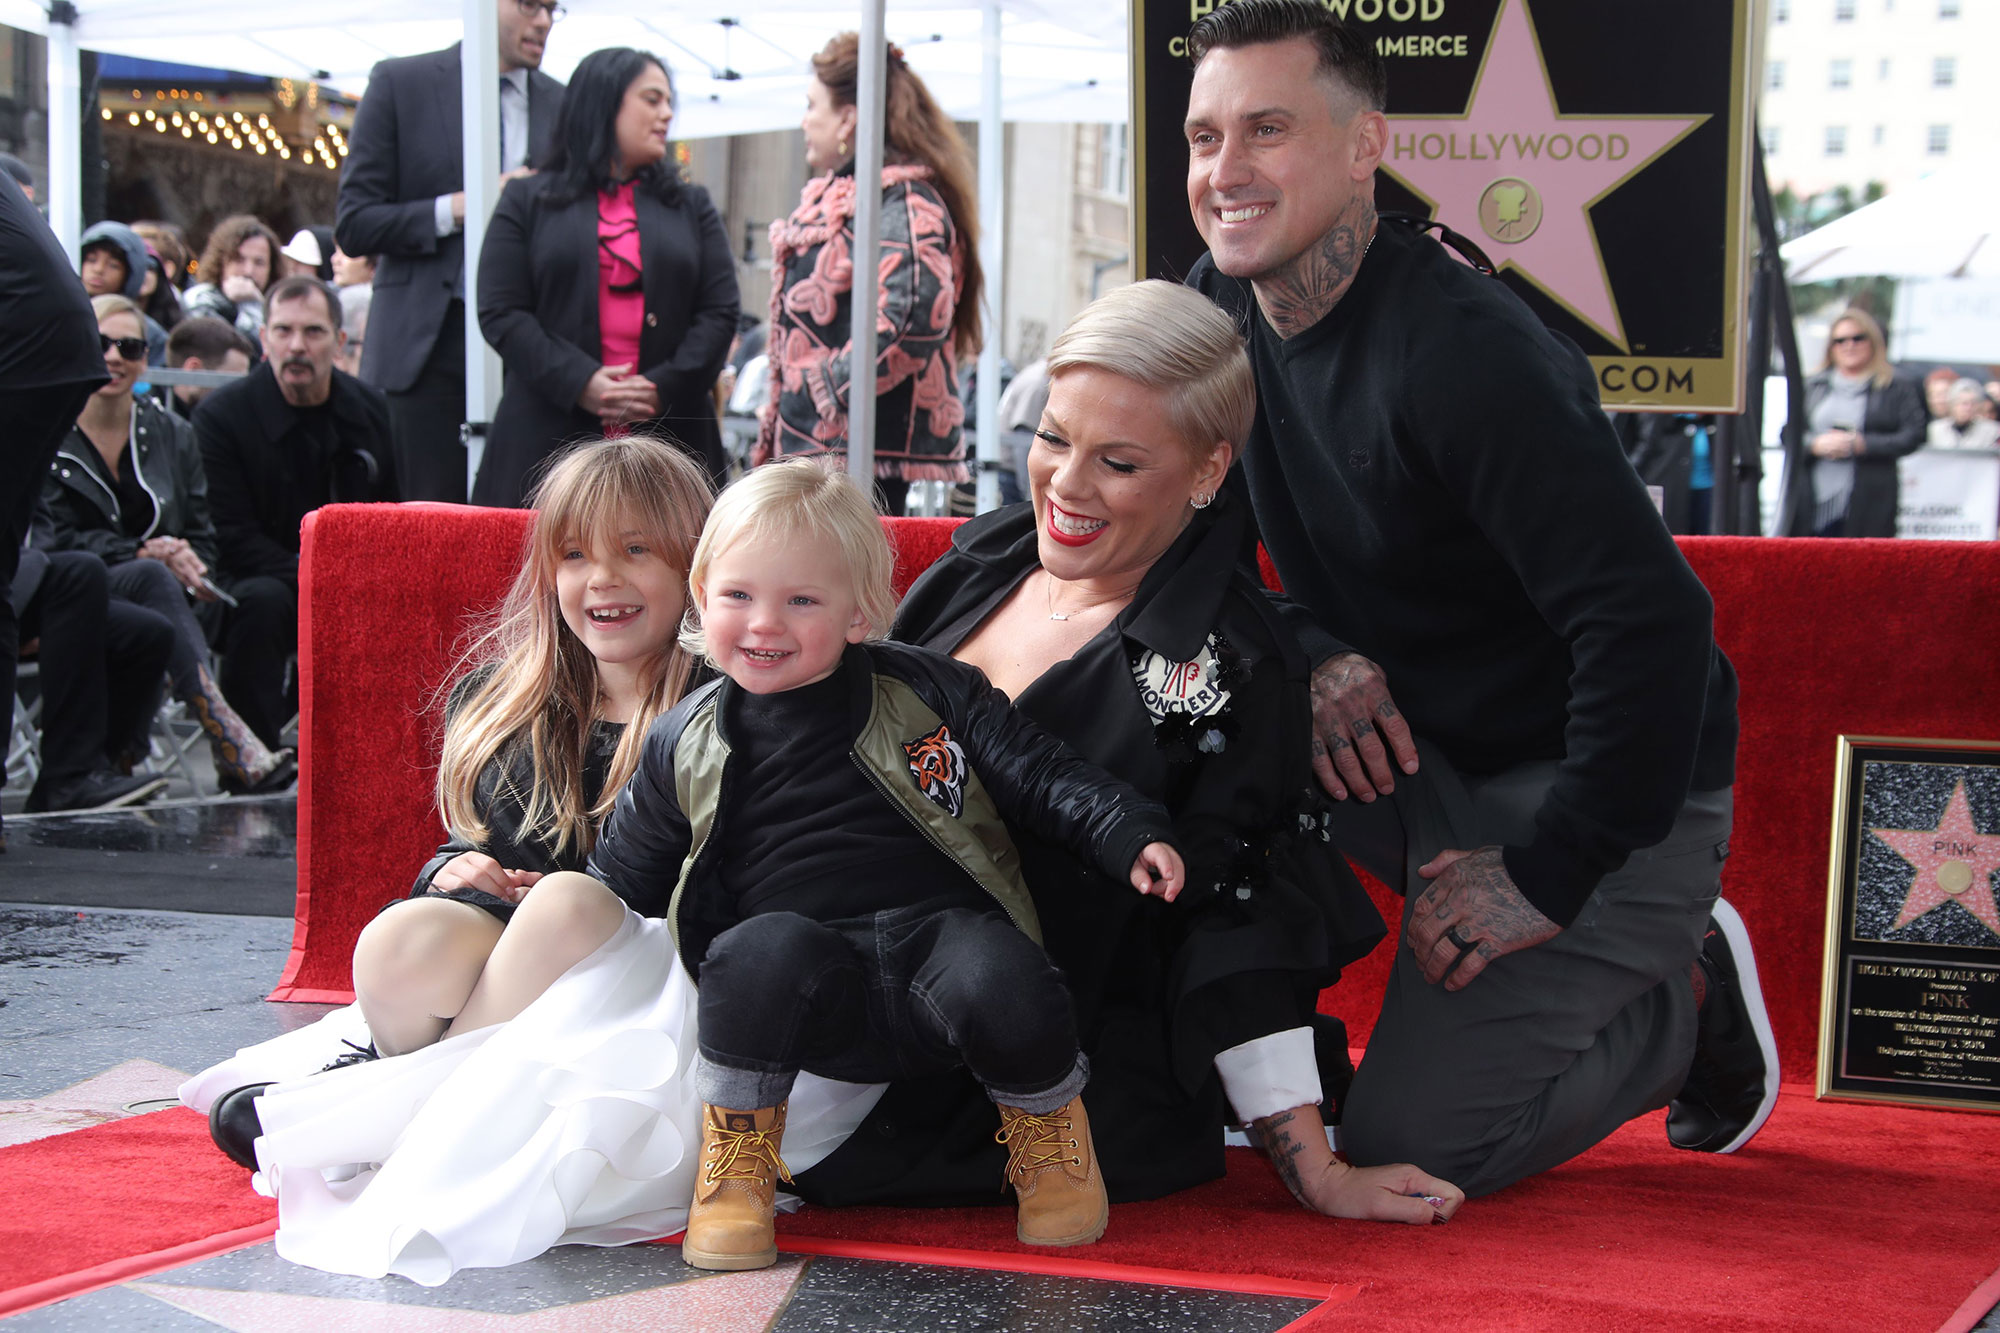 Pink honored with a star on the Hollywood Walk of Fame, Los Angeles, USA - 05 Feb 2019